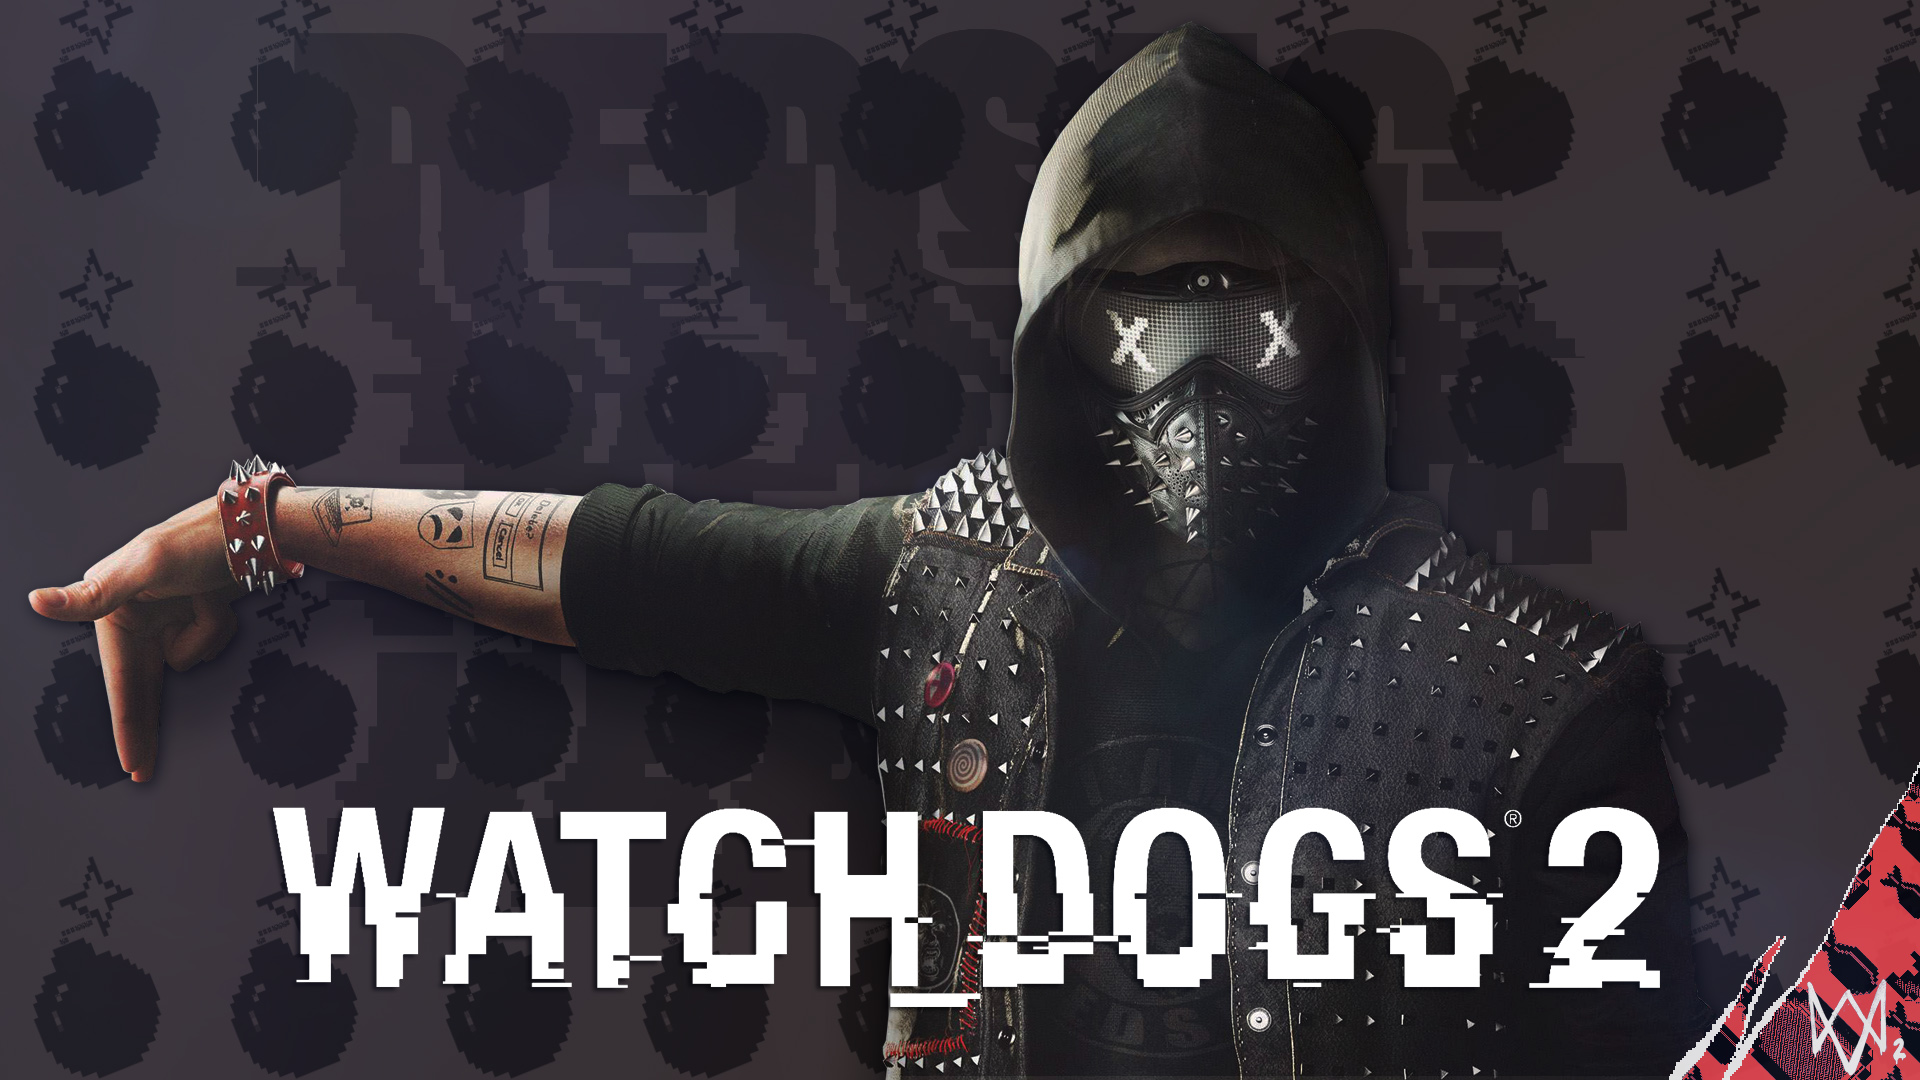 Wrench Watch Dogs 2, HD Games, 4k Wallpapers, Images ...